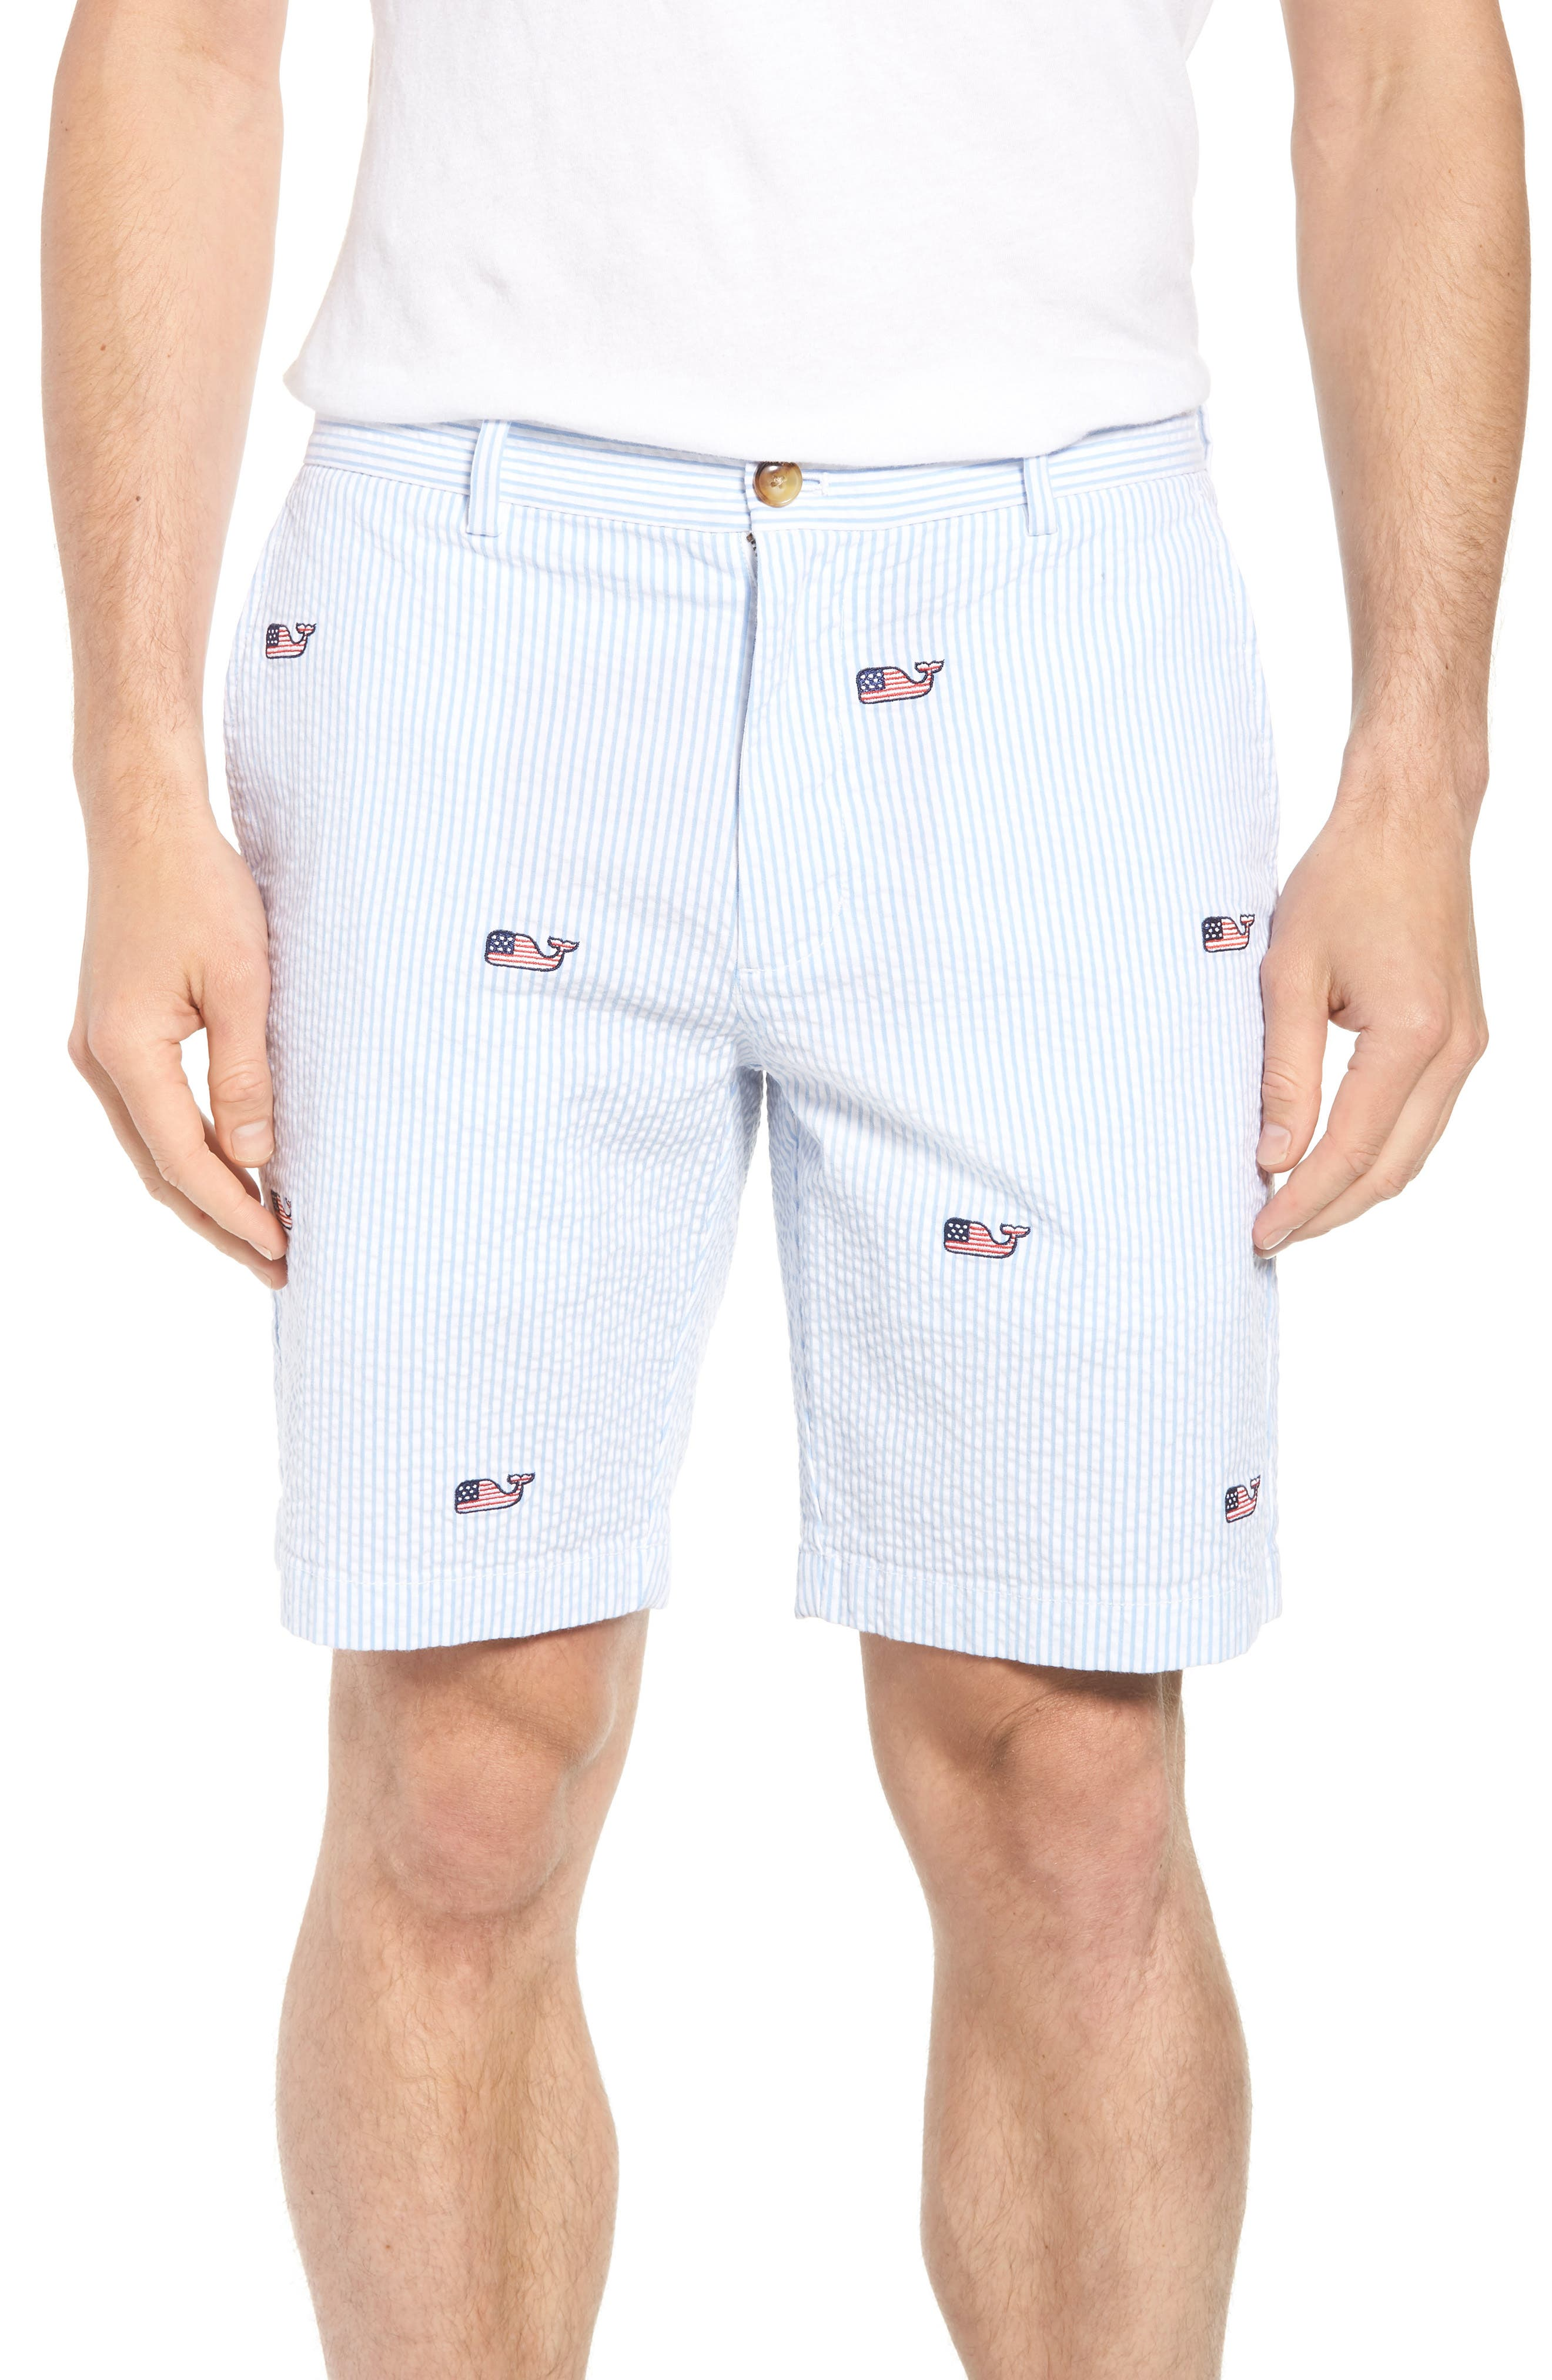 Seersucker Whale Shorts,                             Main thumbnail 1, color,                             484